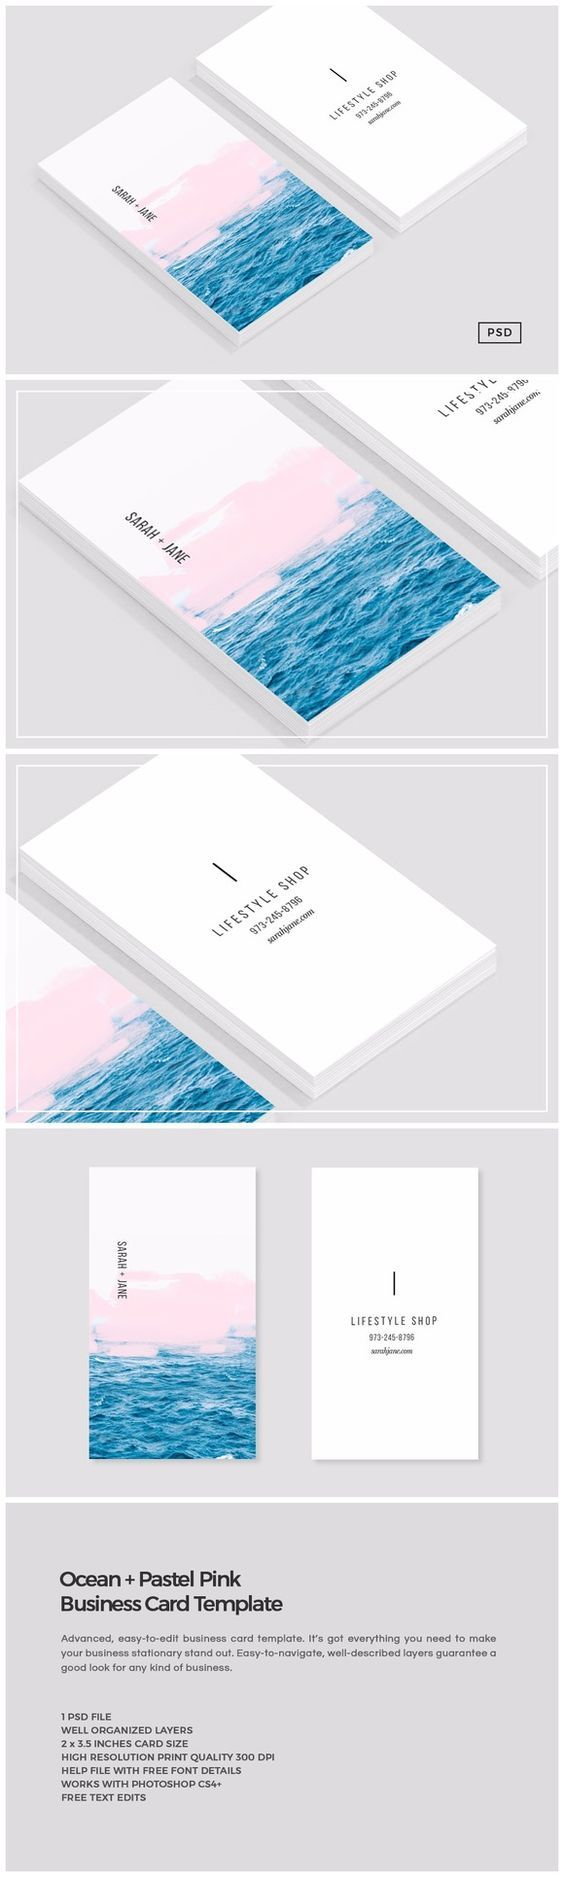 Ocean Pink Business Card Template By Design Co On Creativemarket